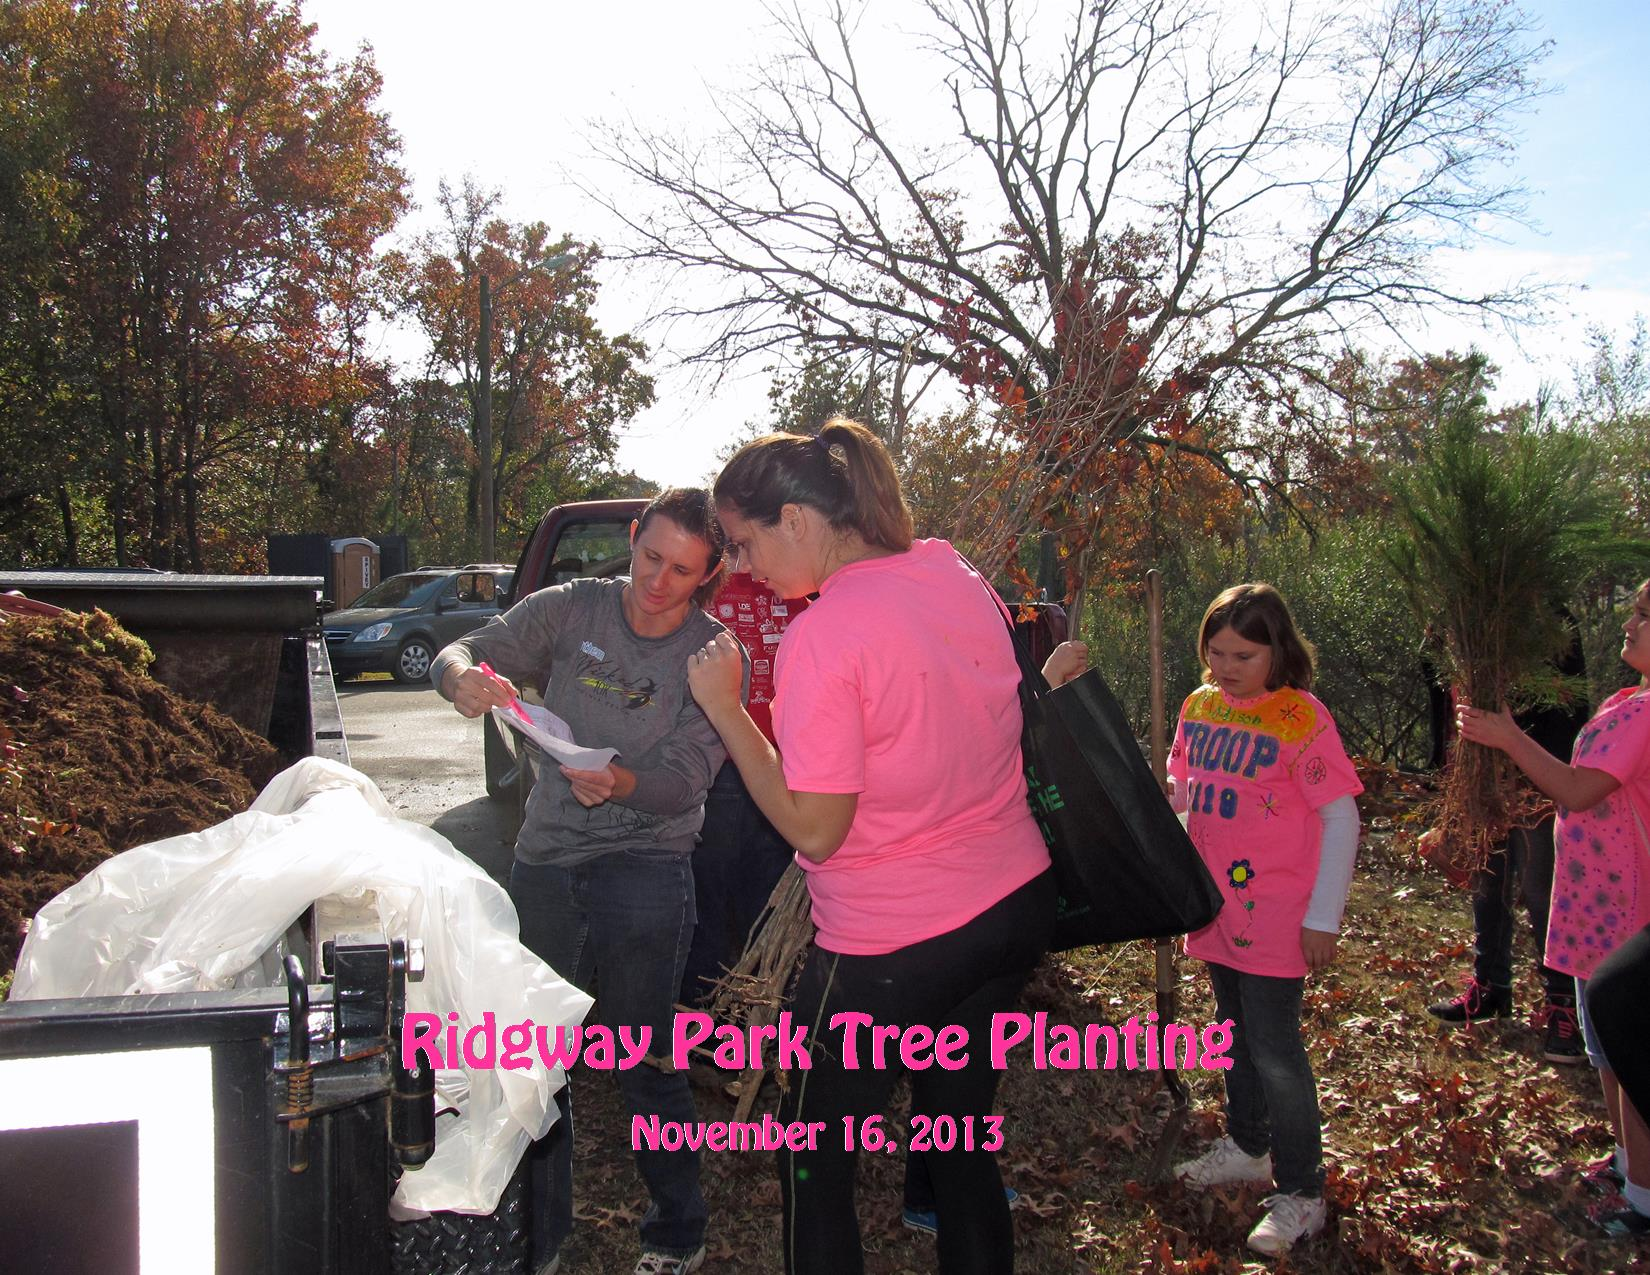 11-16-13 Ridgway Park Tree Planting Getting Trees